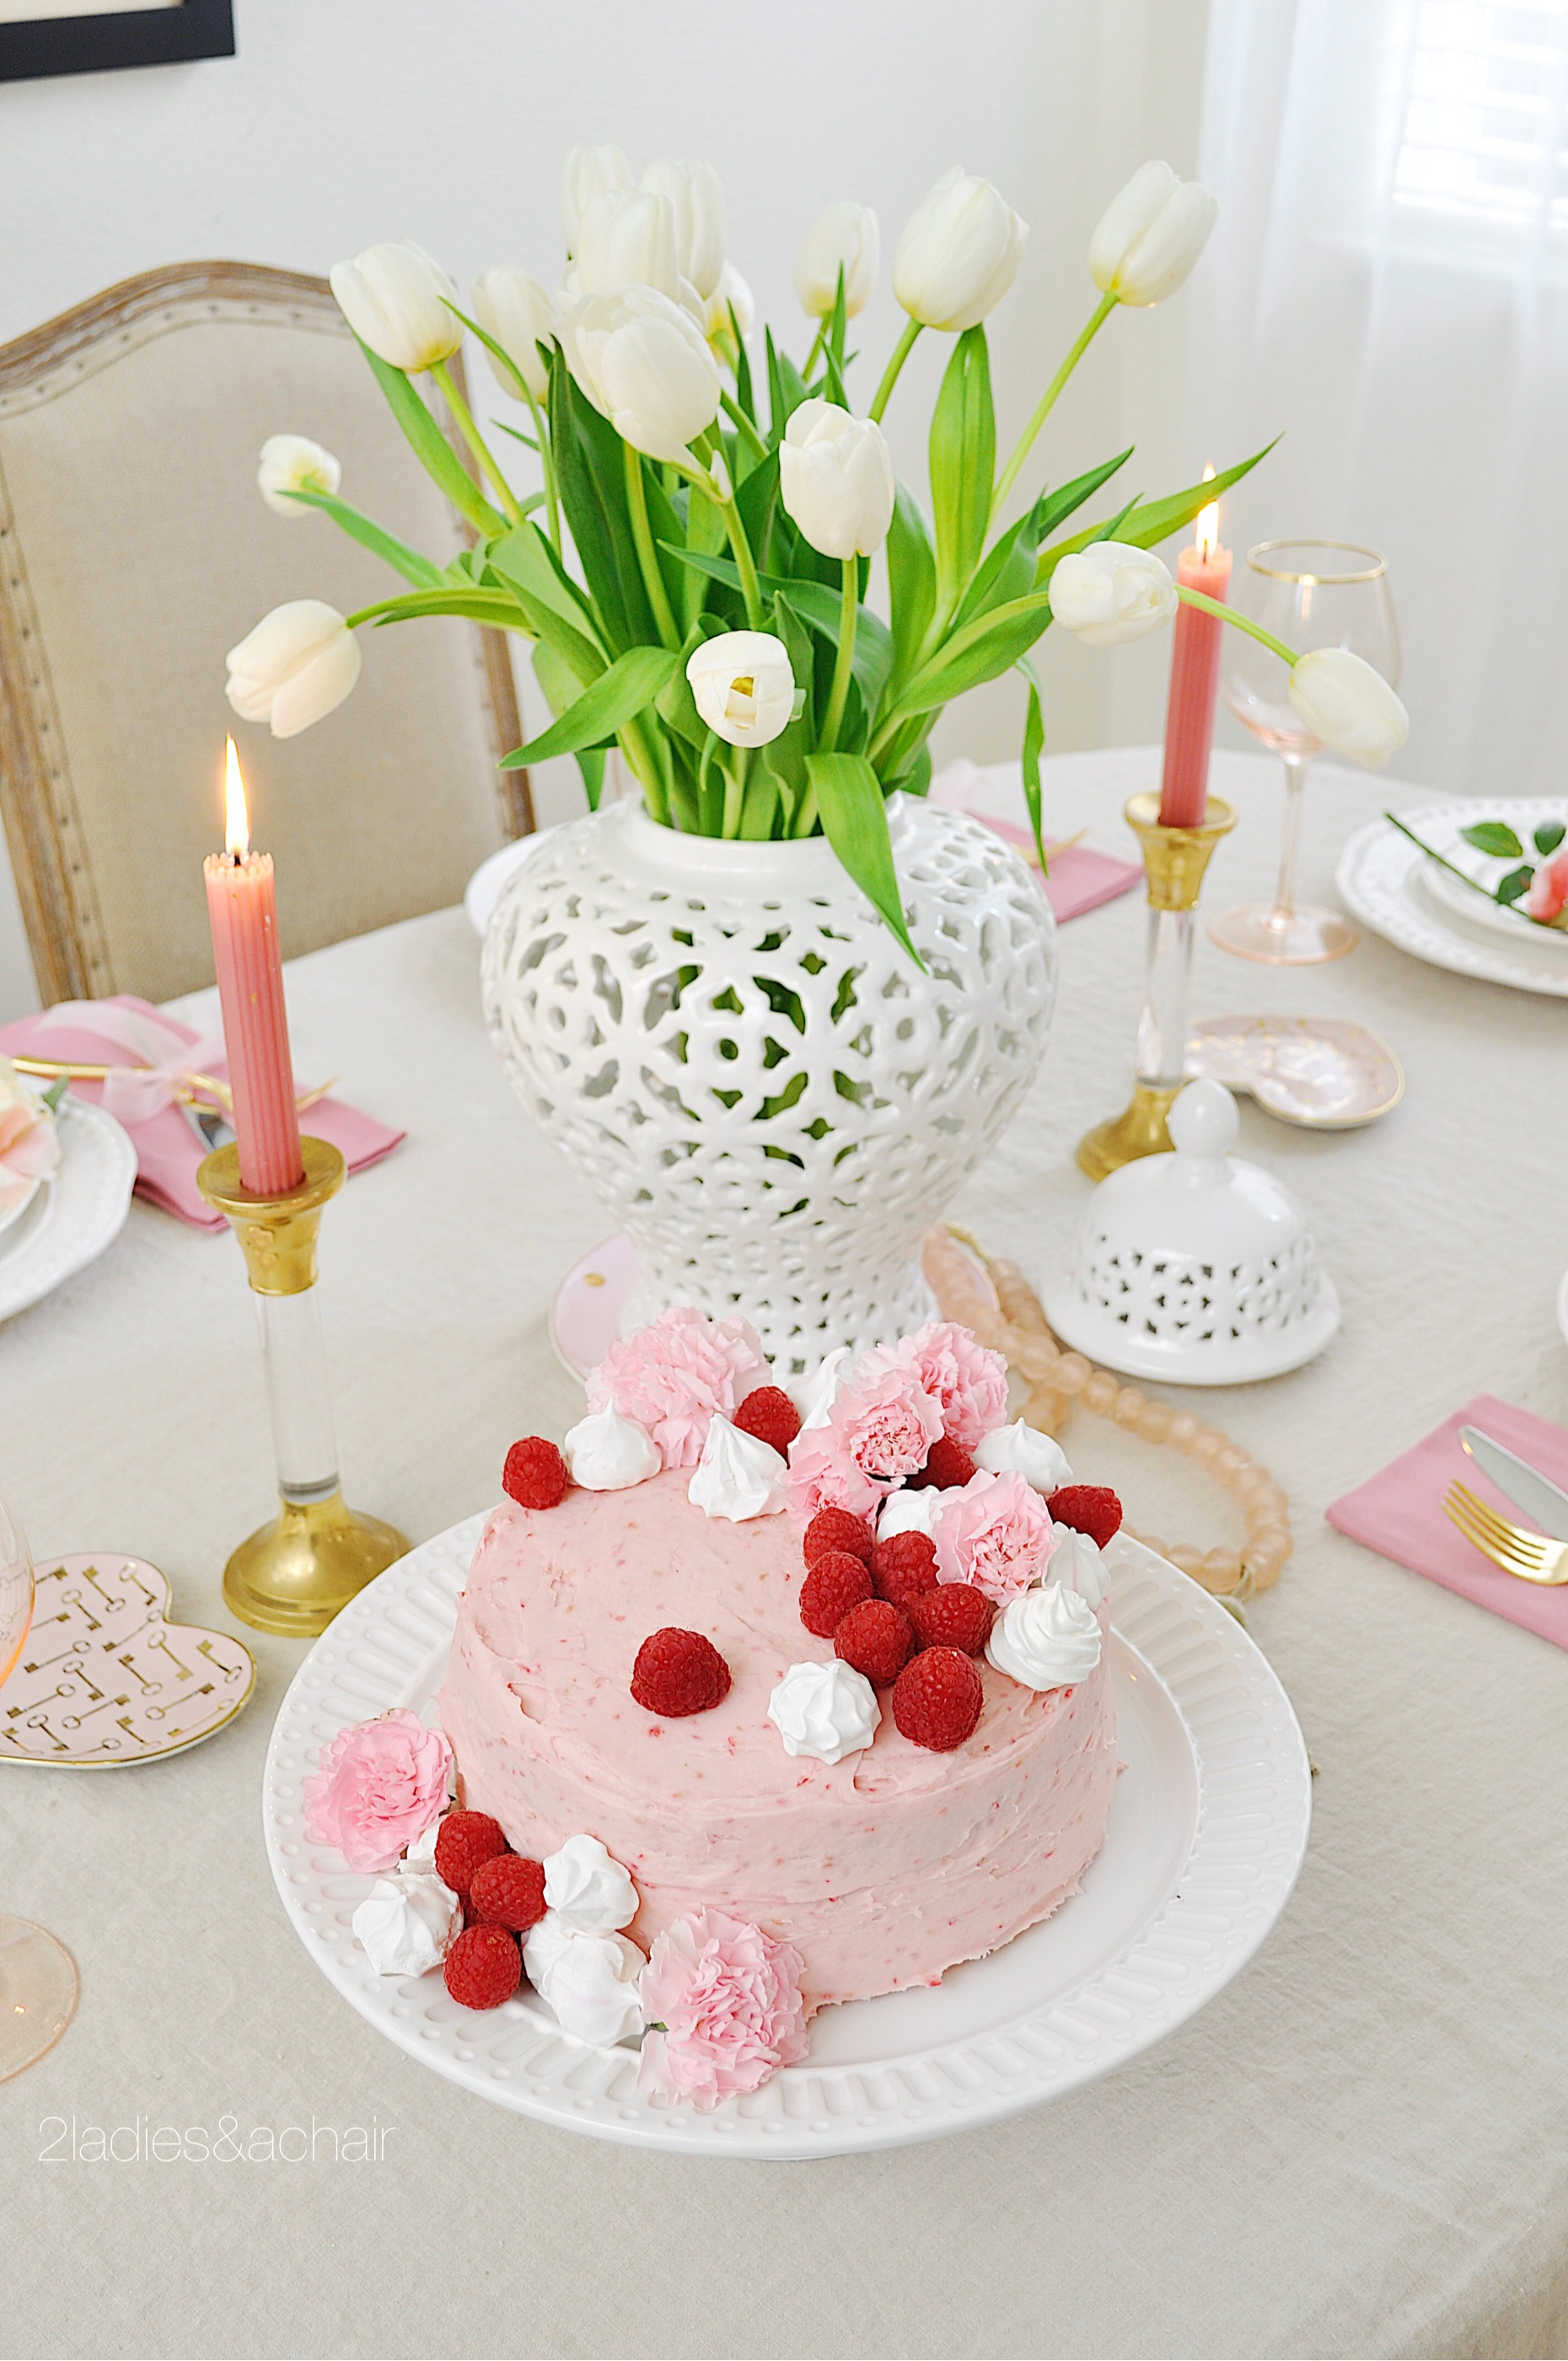 decorate with pink IMG_8940.JPG